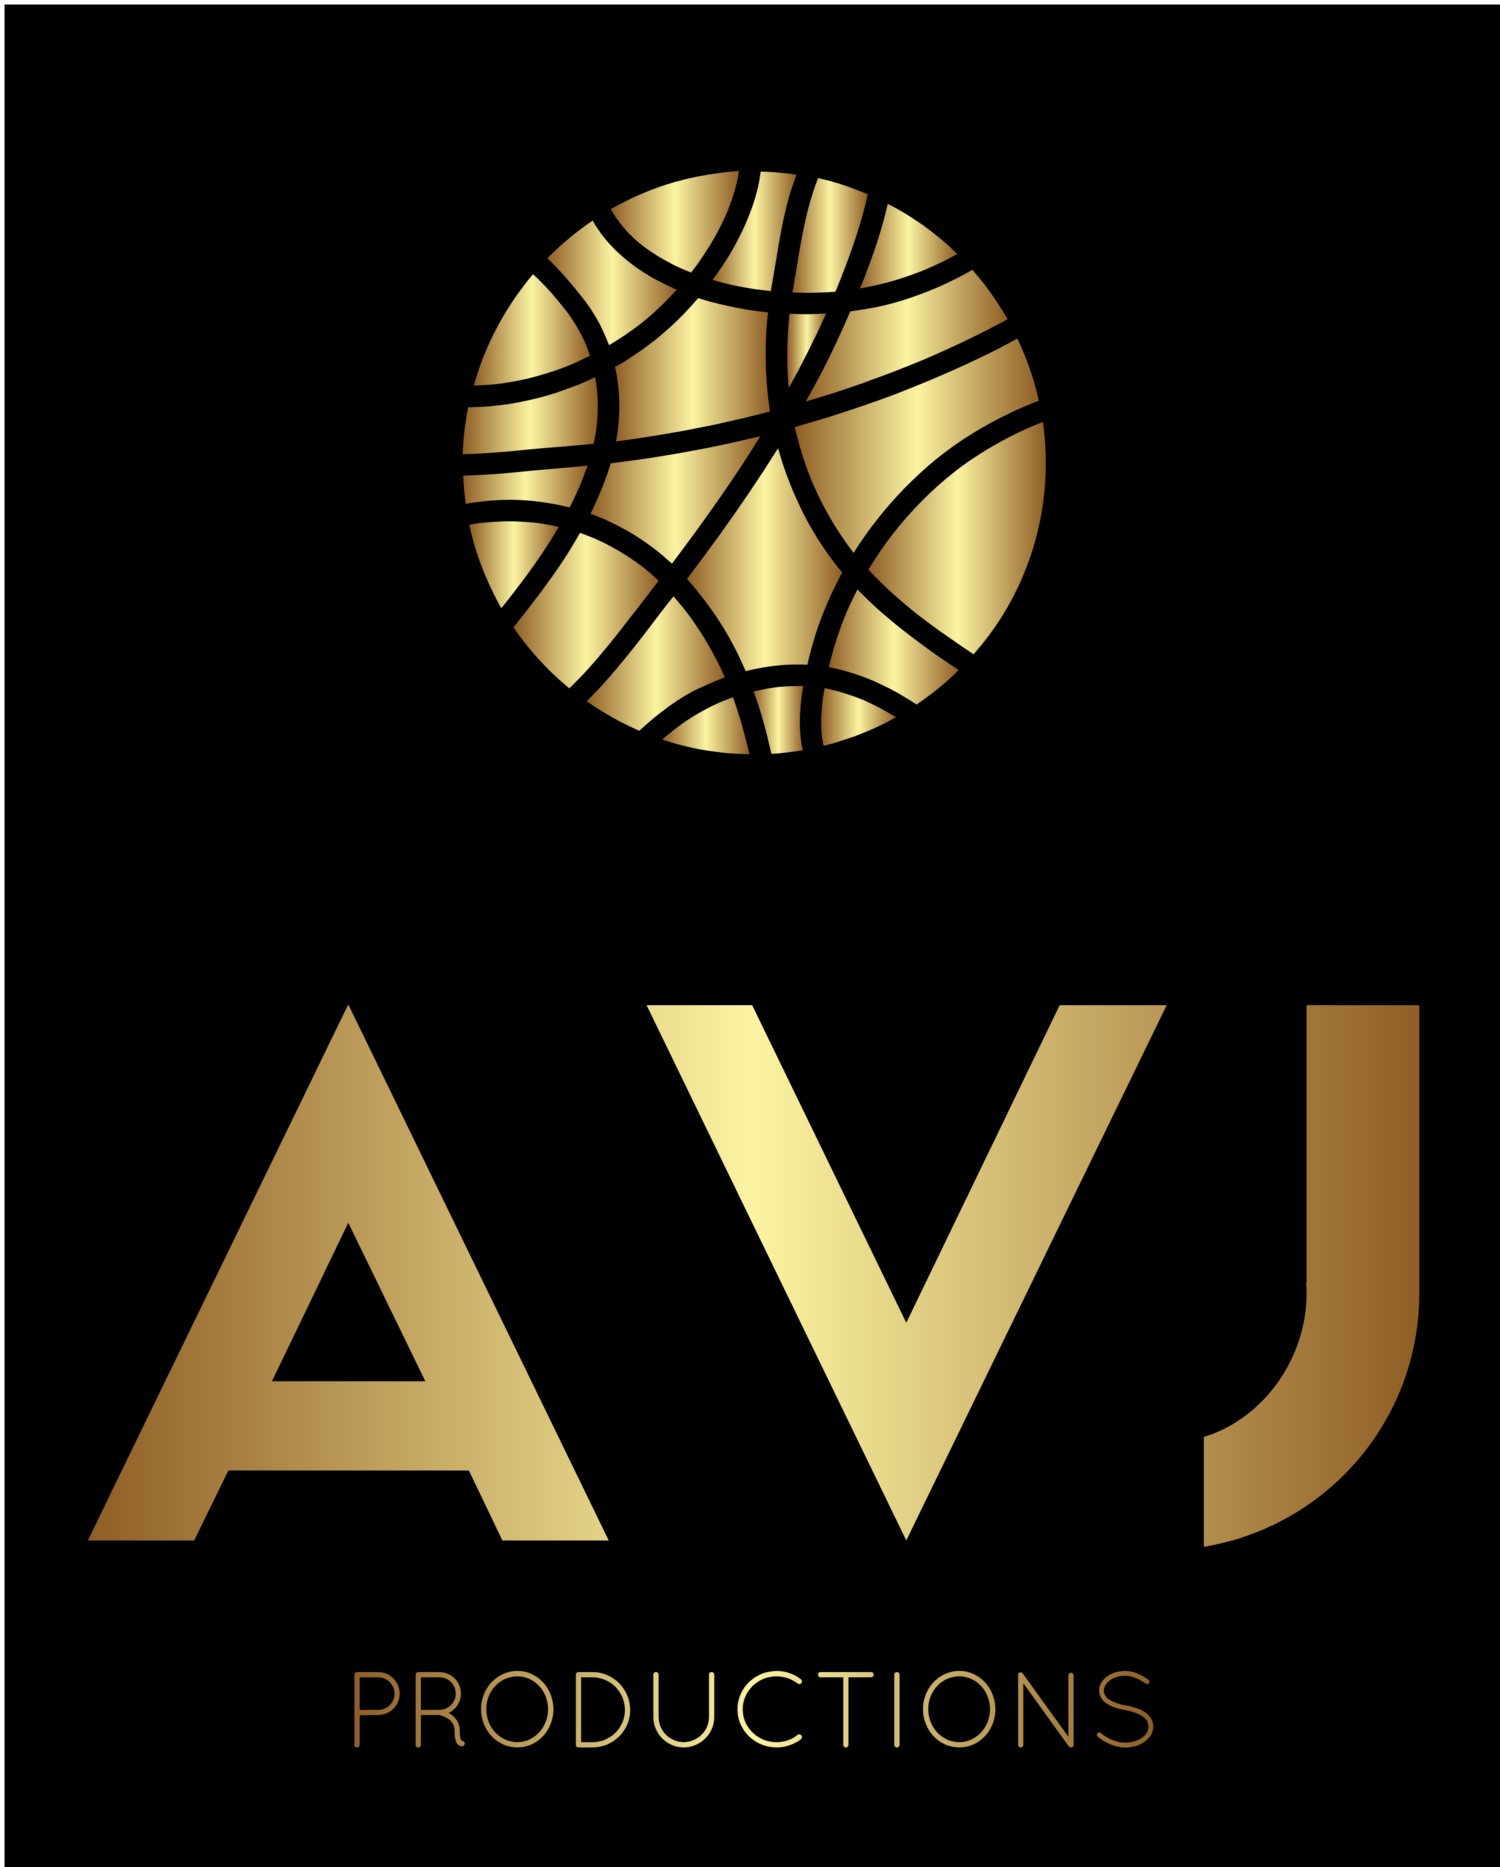 AV Jazz Productions